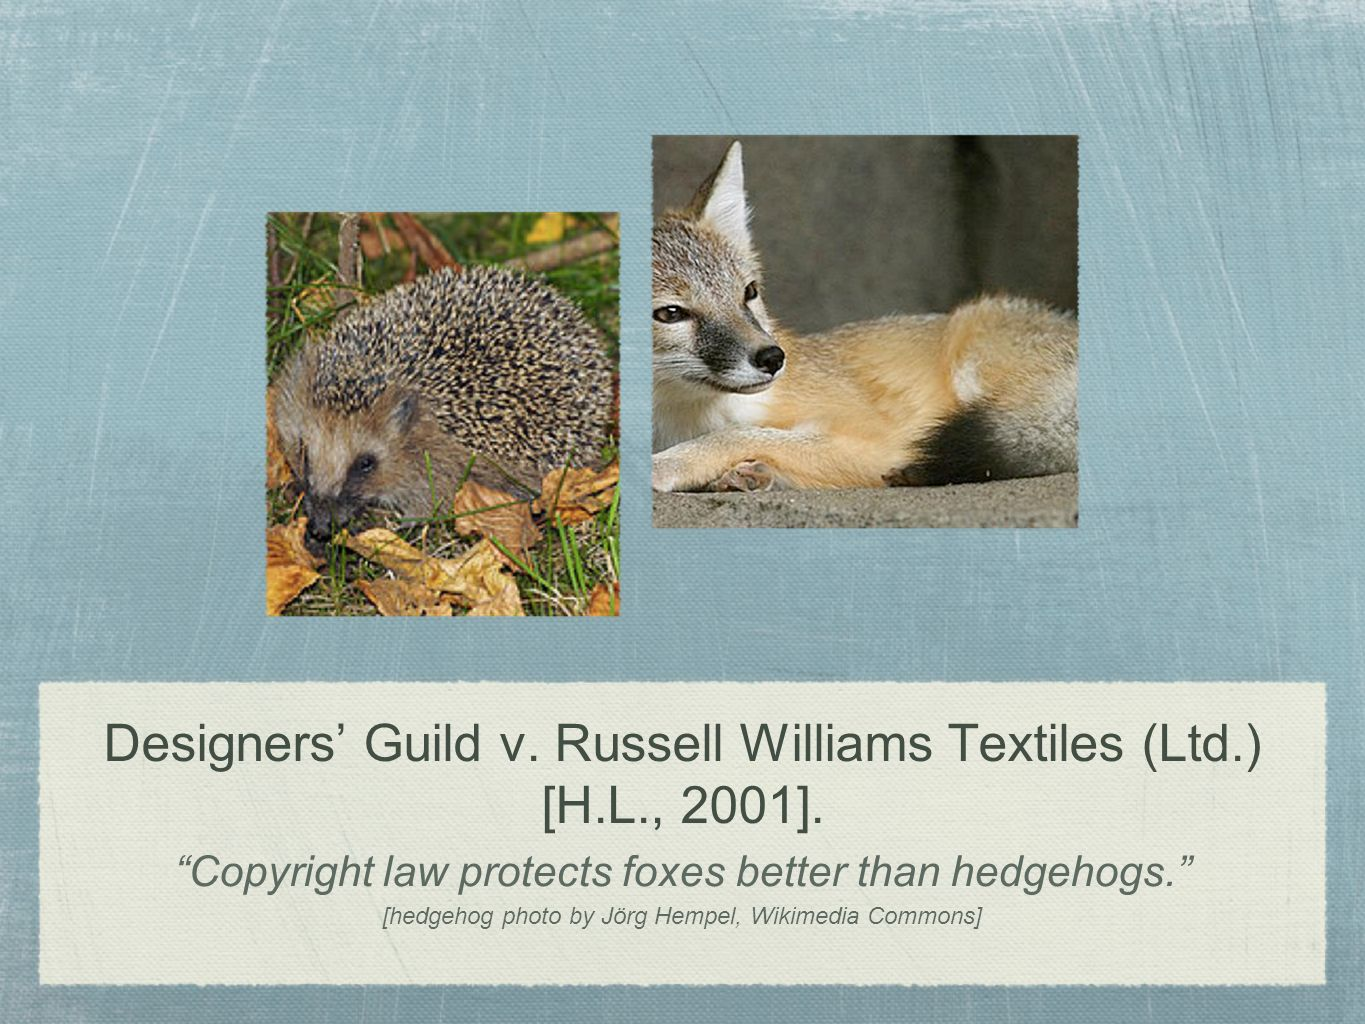 Designers Guild v. Russell Williams Textiles (Ltd.) [H.L., 2001]. Copyright law protects foxes better than hedgehogs. [hedgehog photo by Jörg Hempel,